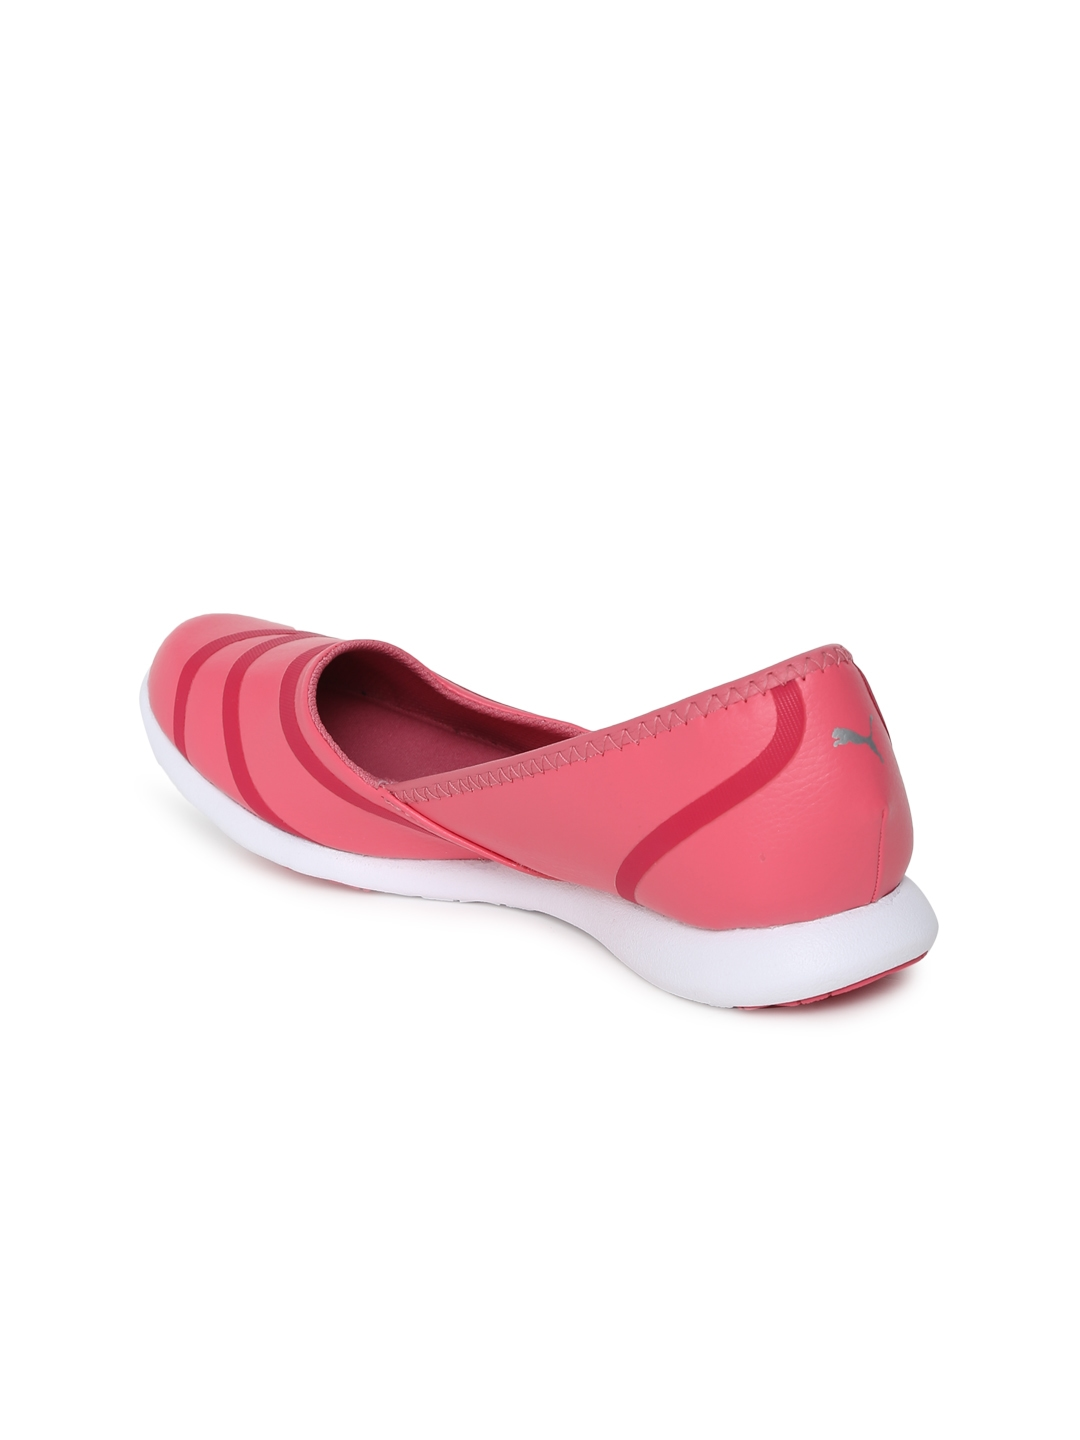 d6f0edc590 Buy Puma Women Pink Vega Ballet SL IDP Slip On Sneakers - Casual ...